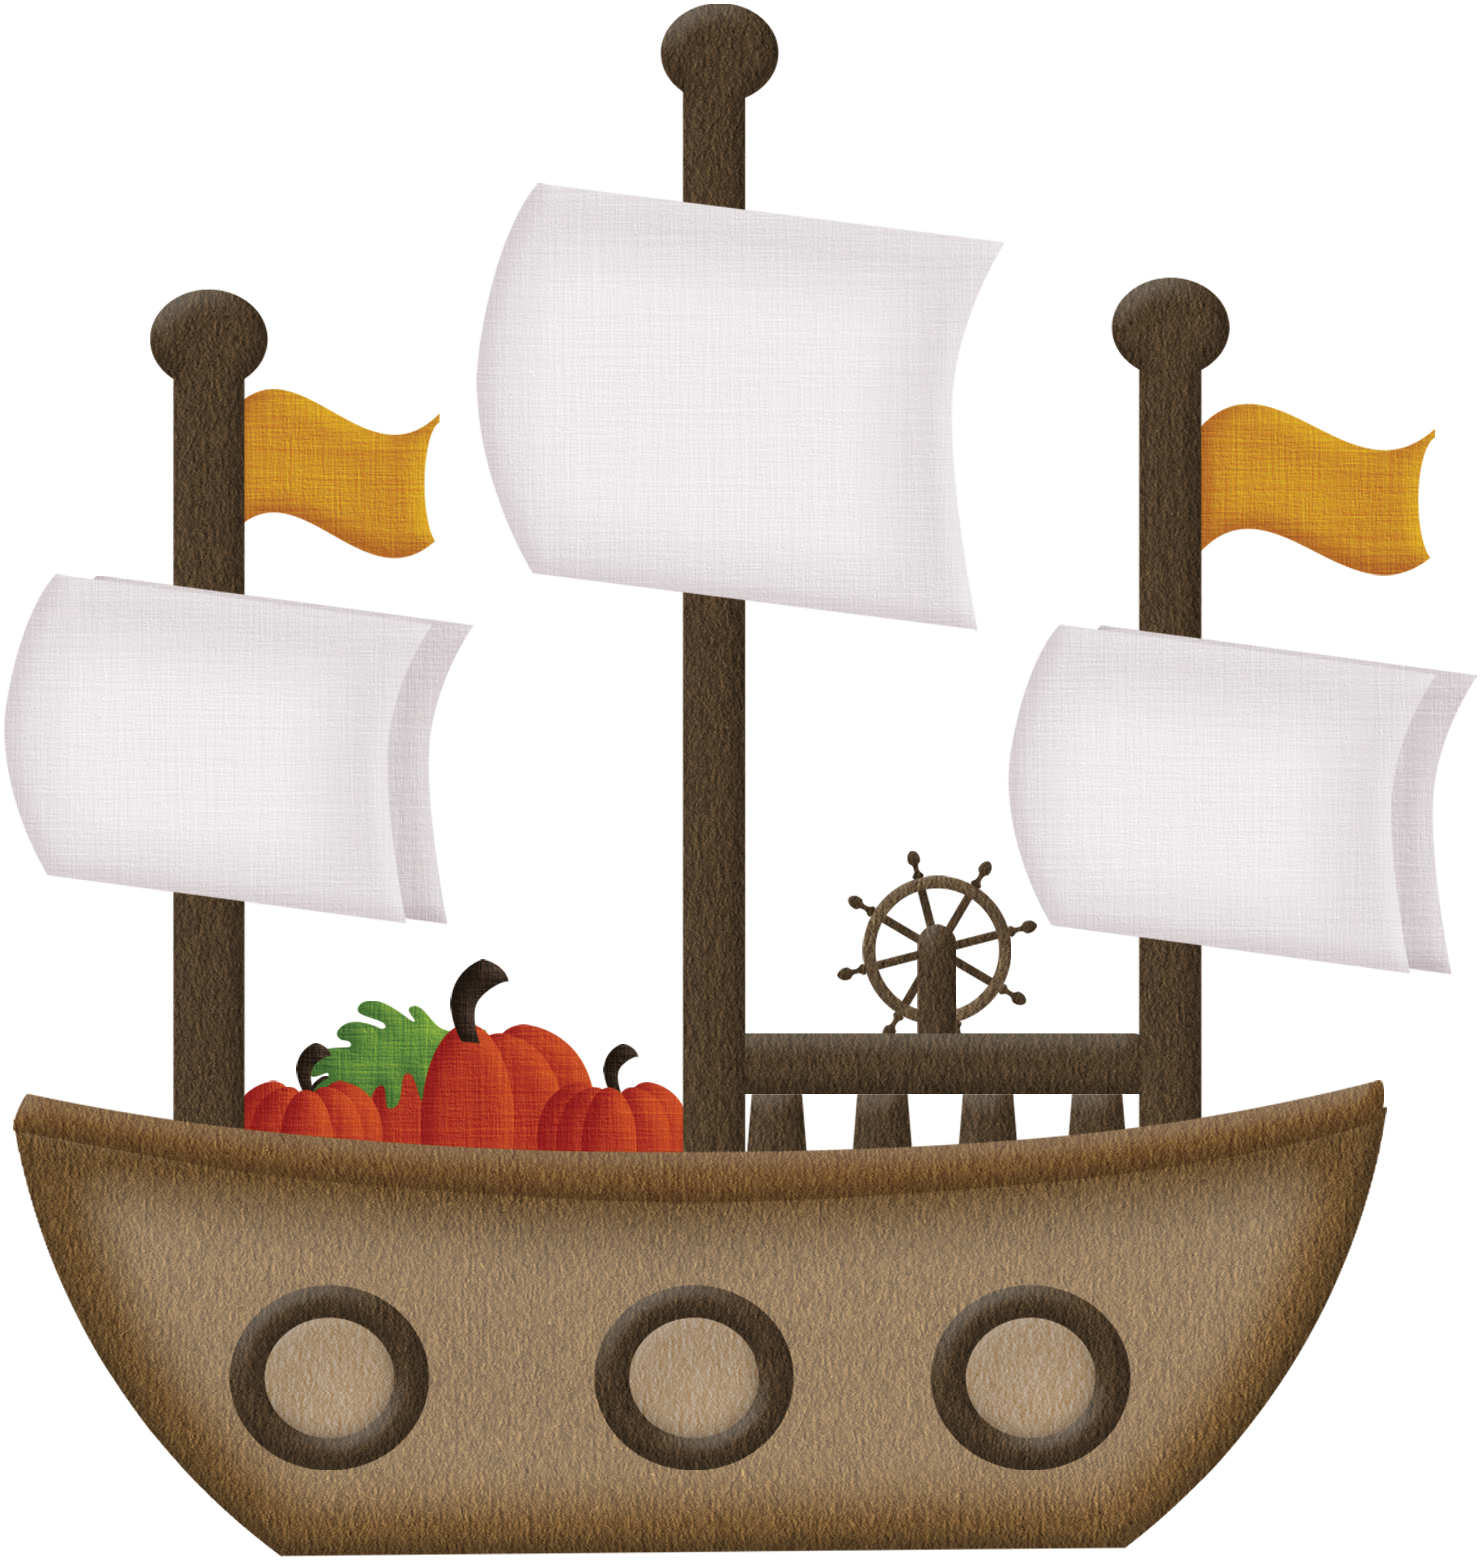 Thanksgiving boat clipart vector royalty free library Photo by @martamota - Minus | Dibus | Pinterest | Pilgrim ... vector royalty free library